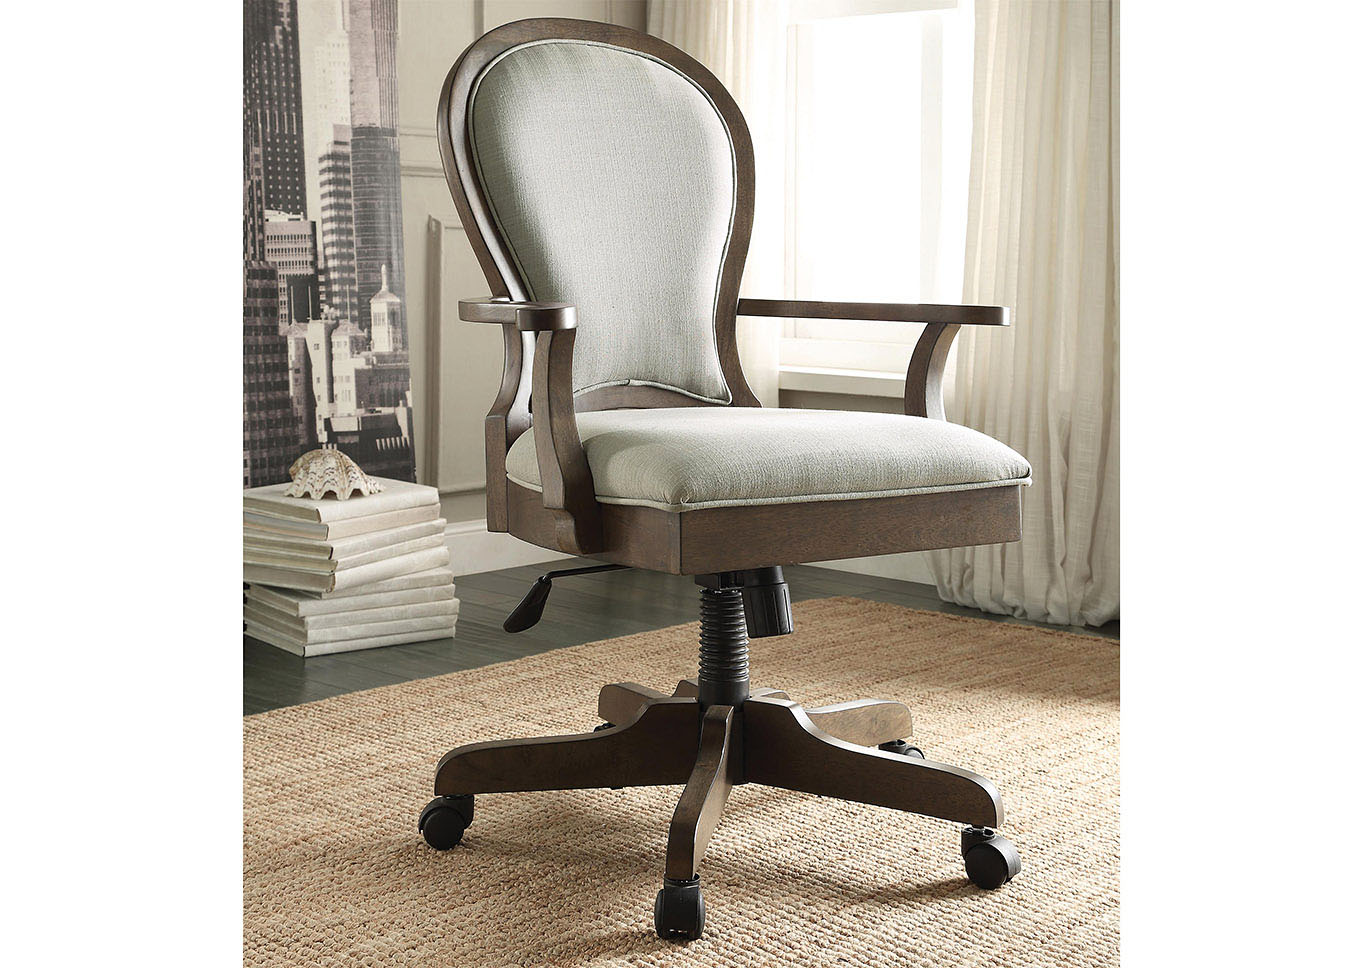 Belmeade Oak Scroll Back Upholstered Desk Chair,Riverside